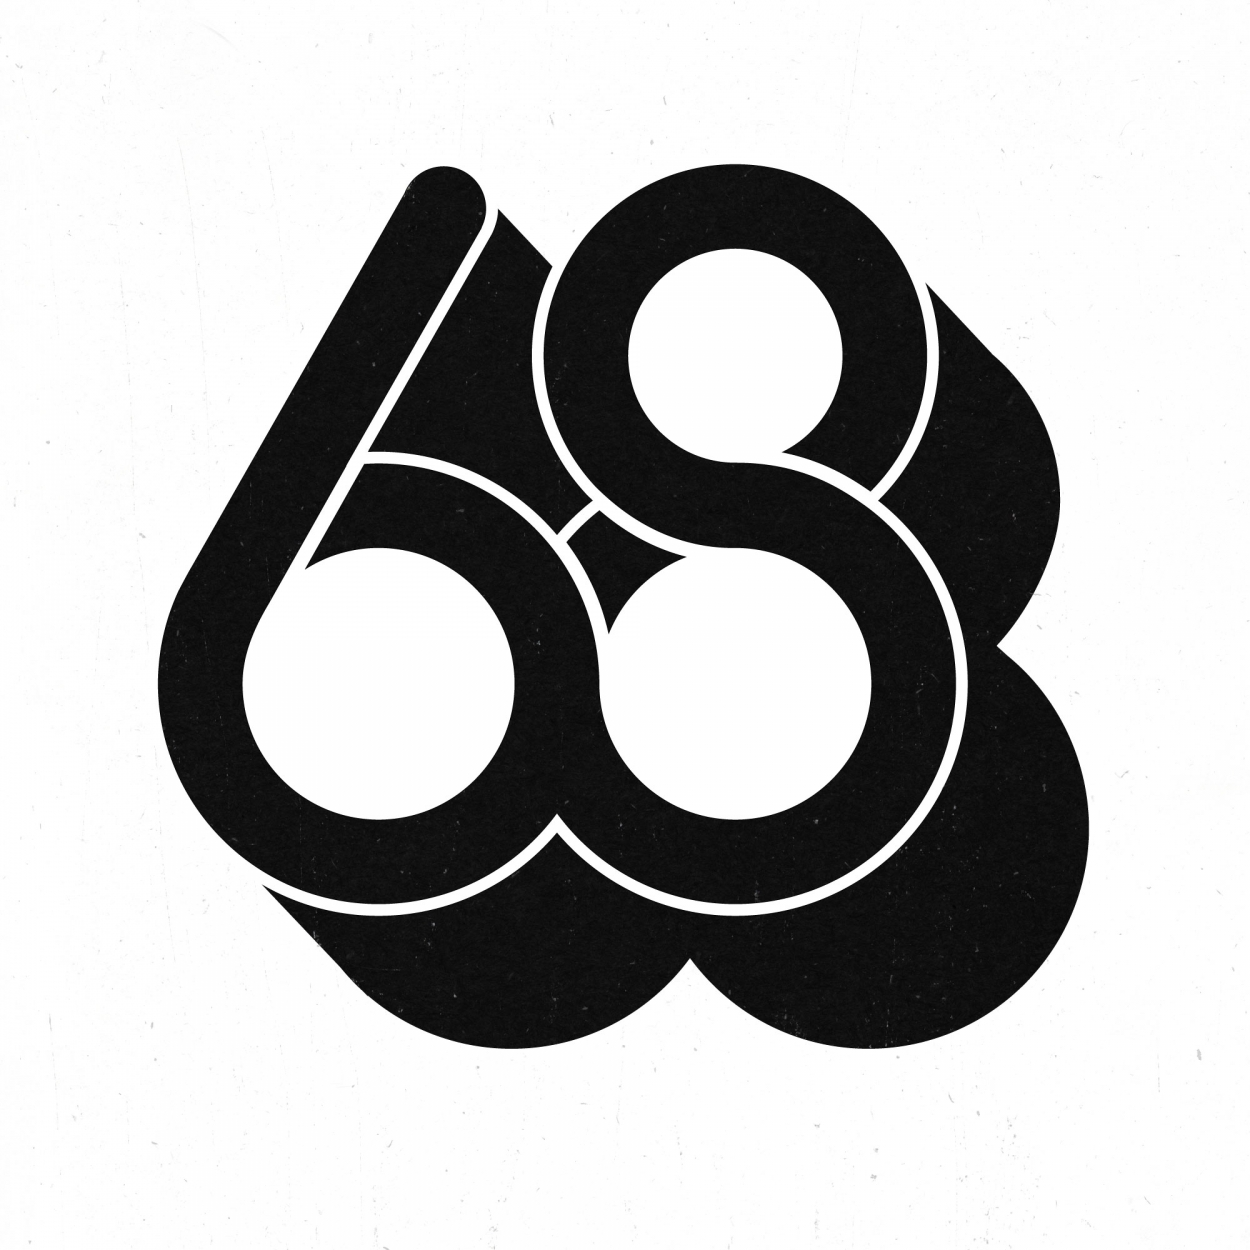 68 >> 68 Friends Of Type